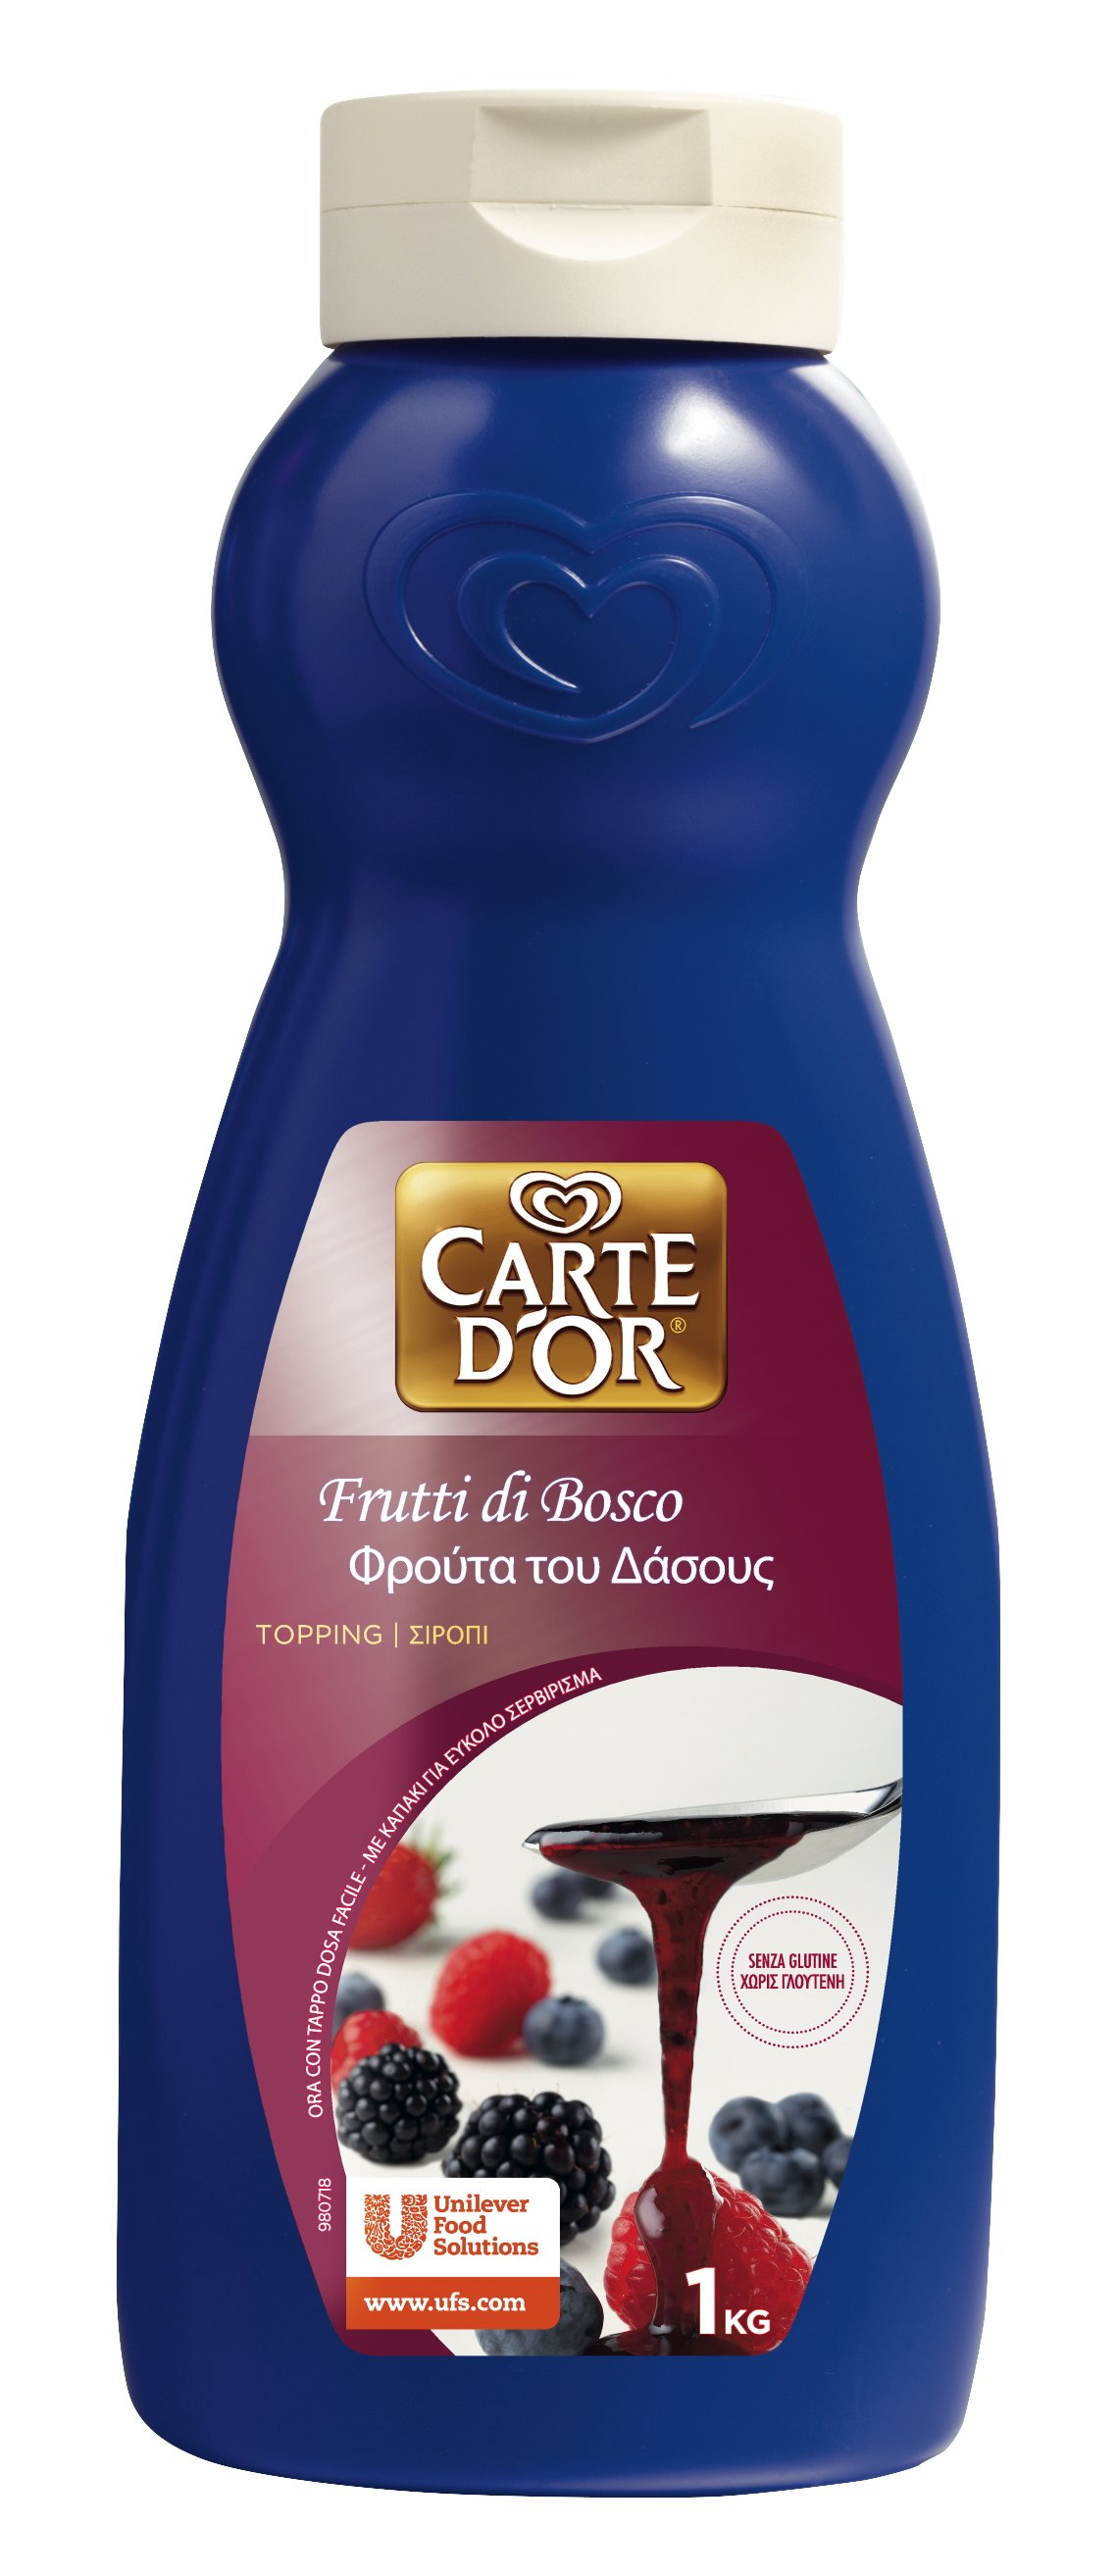 Carte d'Or Topping Frutti di Bosco 1 Kg